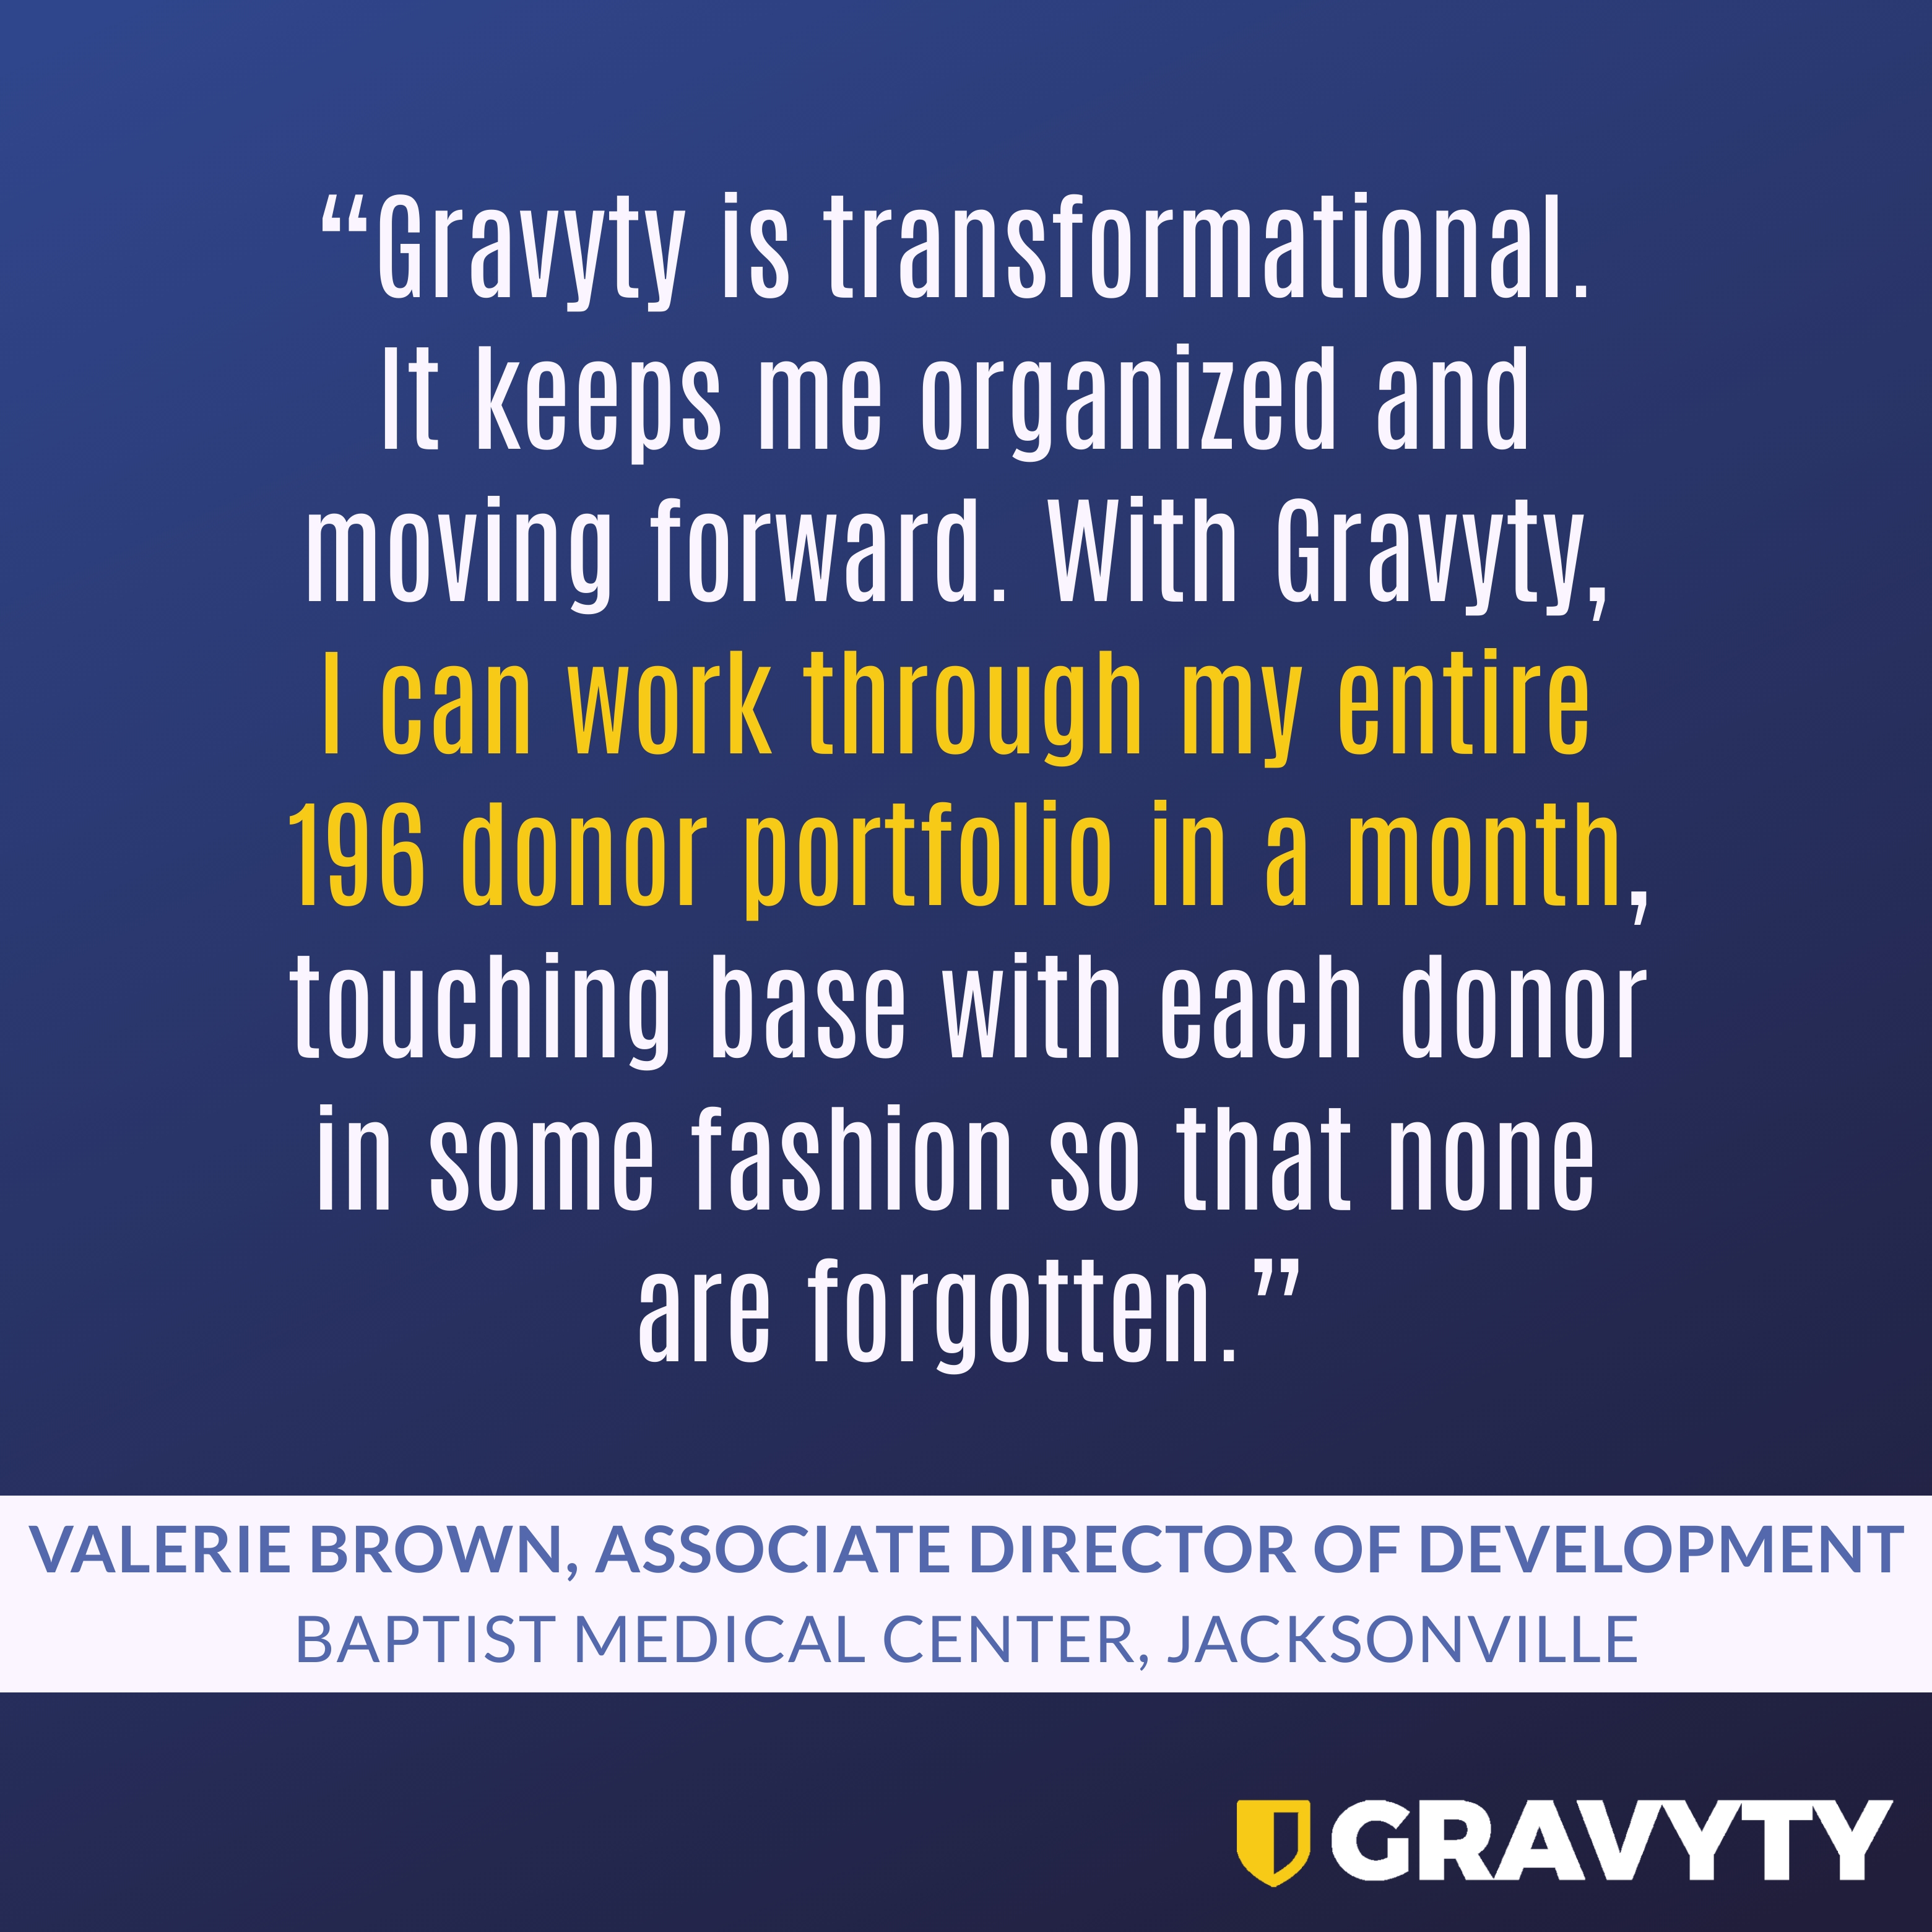 """""""Gravyty is transformational. It keeps me organized and moving forward. With Gravyty, I can work through my entire 196 donor portfolio in a month, touching base with each donor in some fashion so that none are forgotten."""" AI Enabled Fundraiser, Valerie Brown of Baptist Medical Center, Jacksonville"""